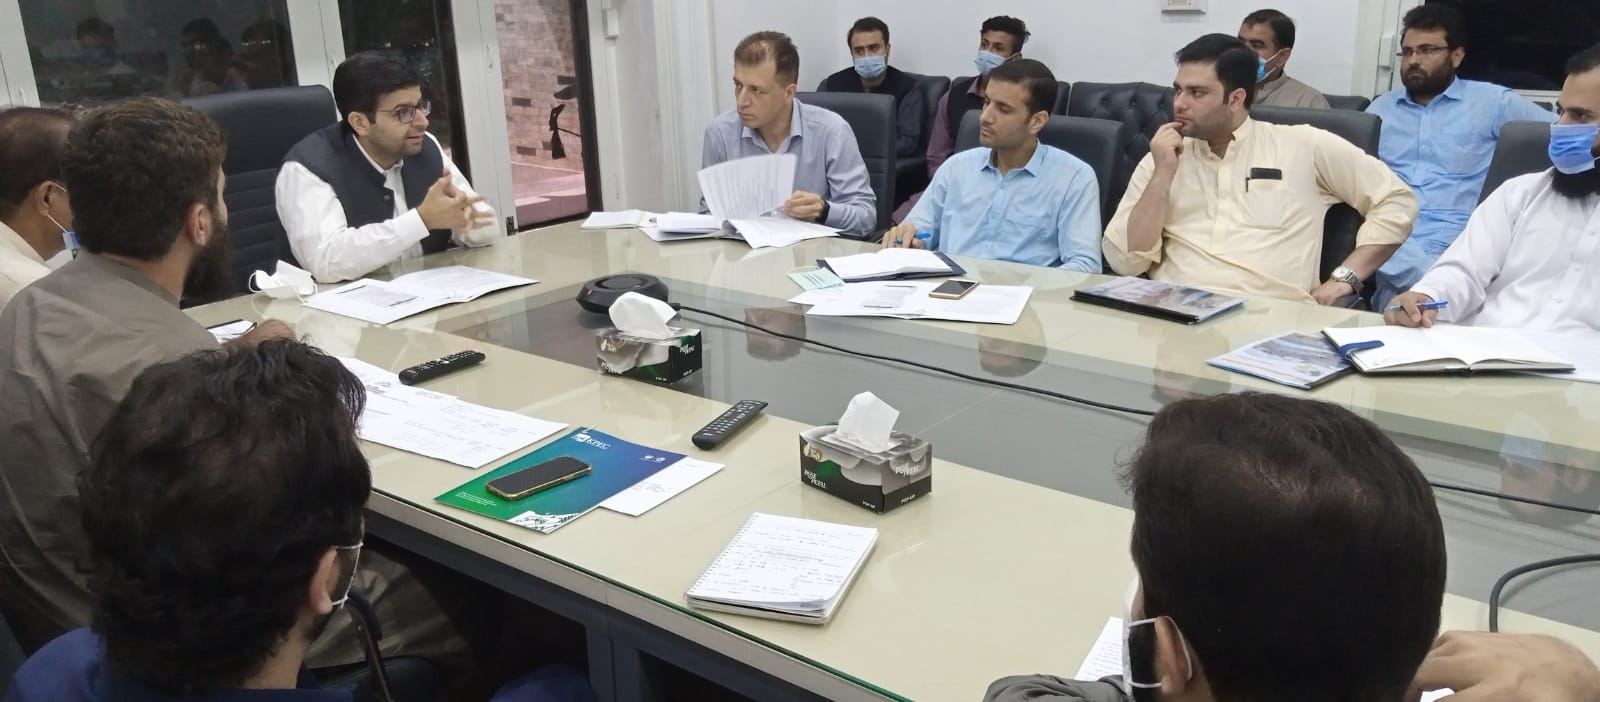 A view of Pre Submission meeting, Expression of Interest